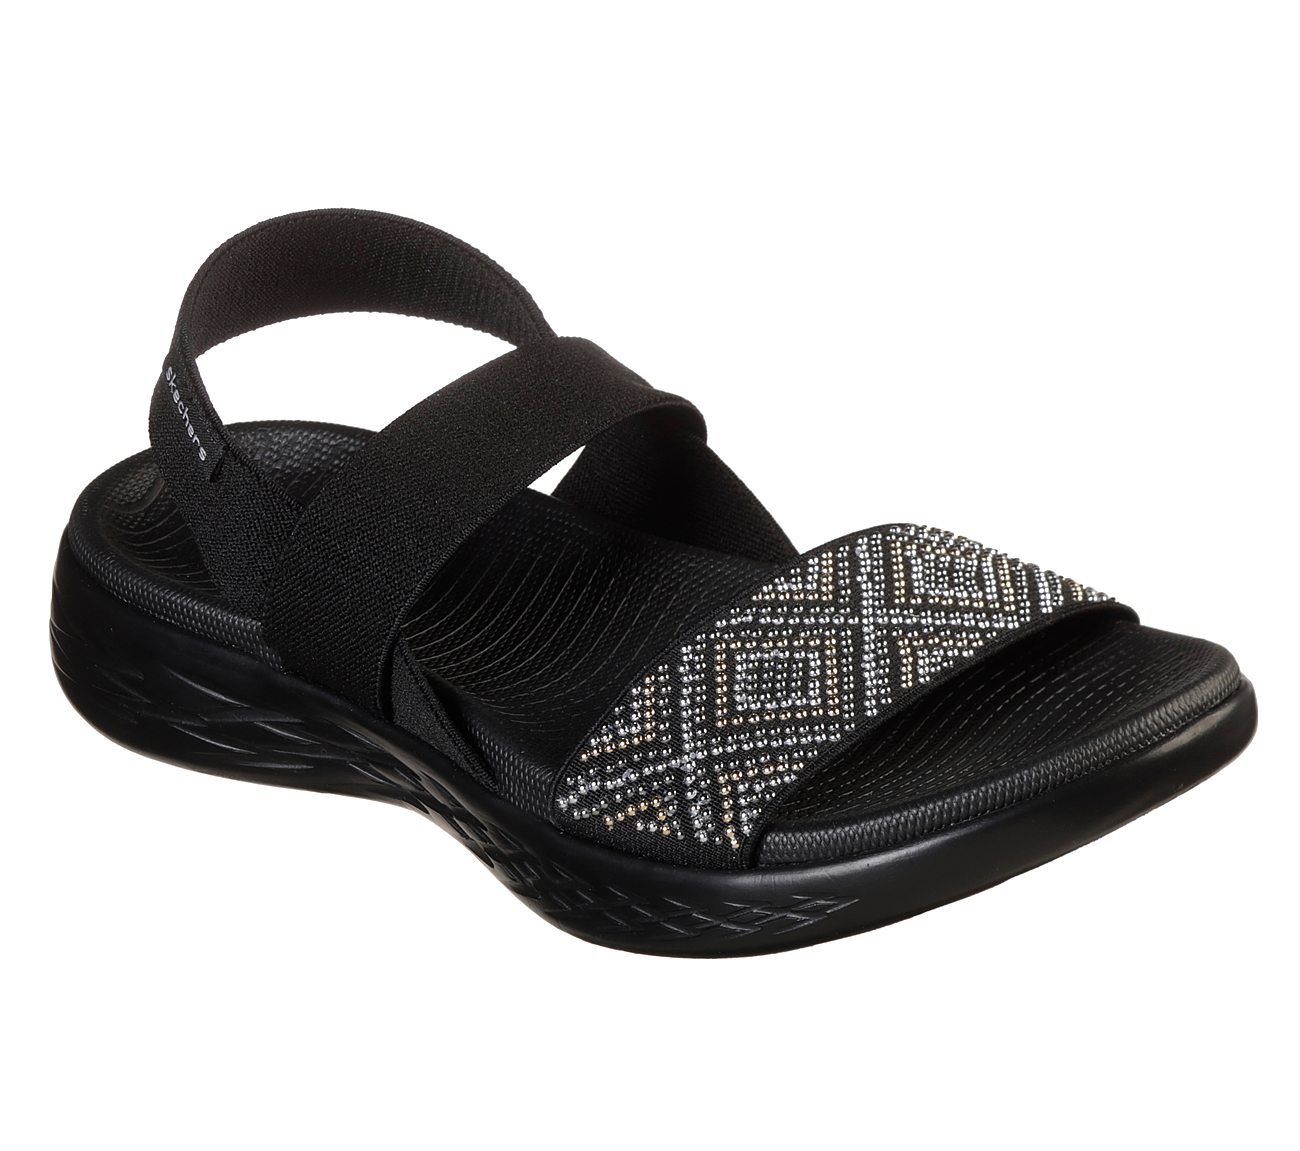 Buy Skechers Skechers On The Go 600 Glitzy Skechers Performance Shoes